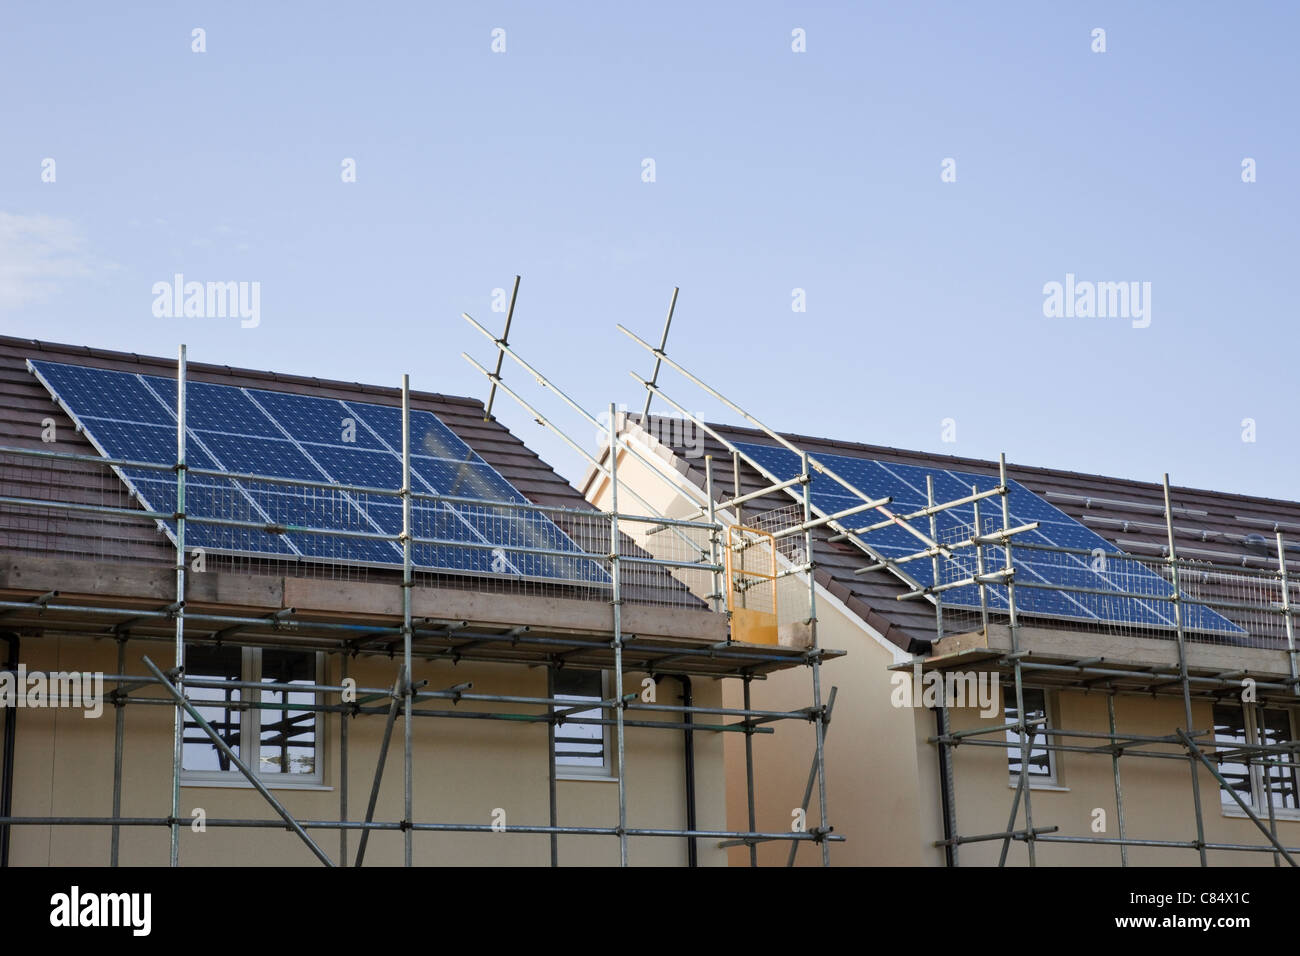 England, UK, Britain, Europe. Scaffolding for solar panels being installed on the roofs of new build houses - Stock Image